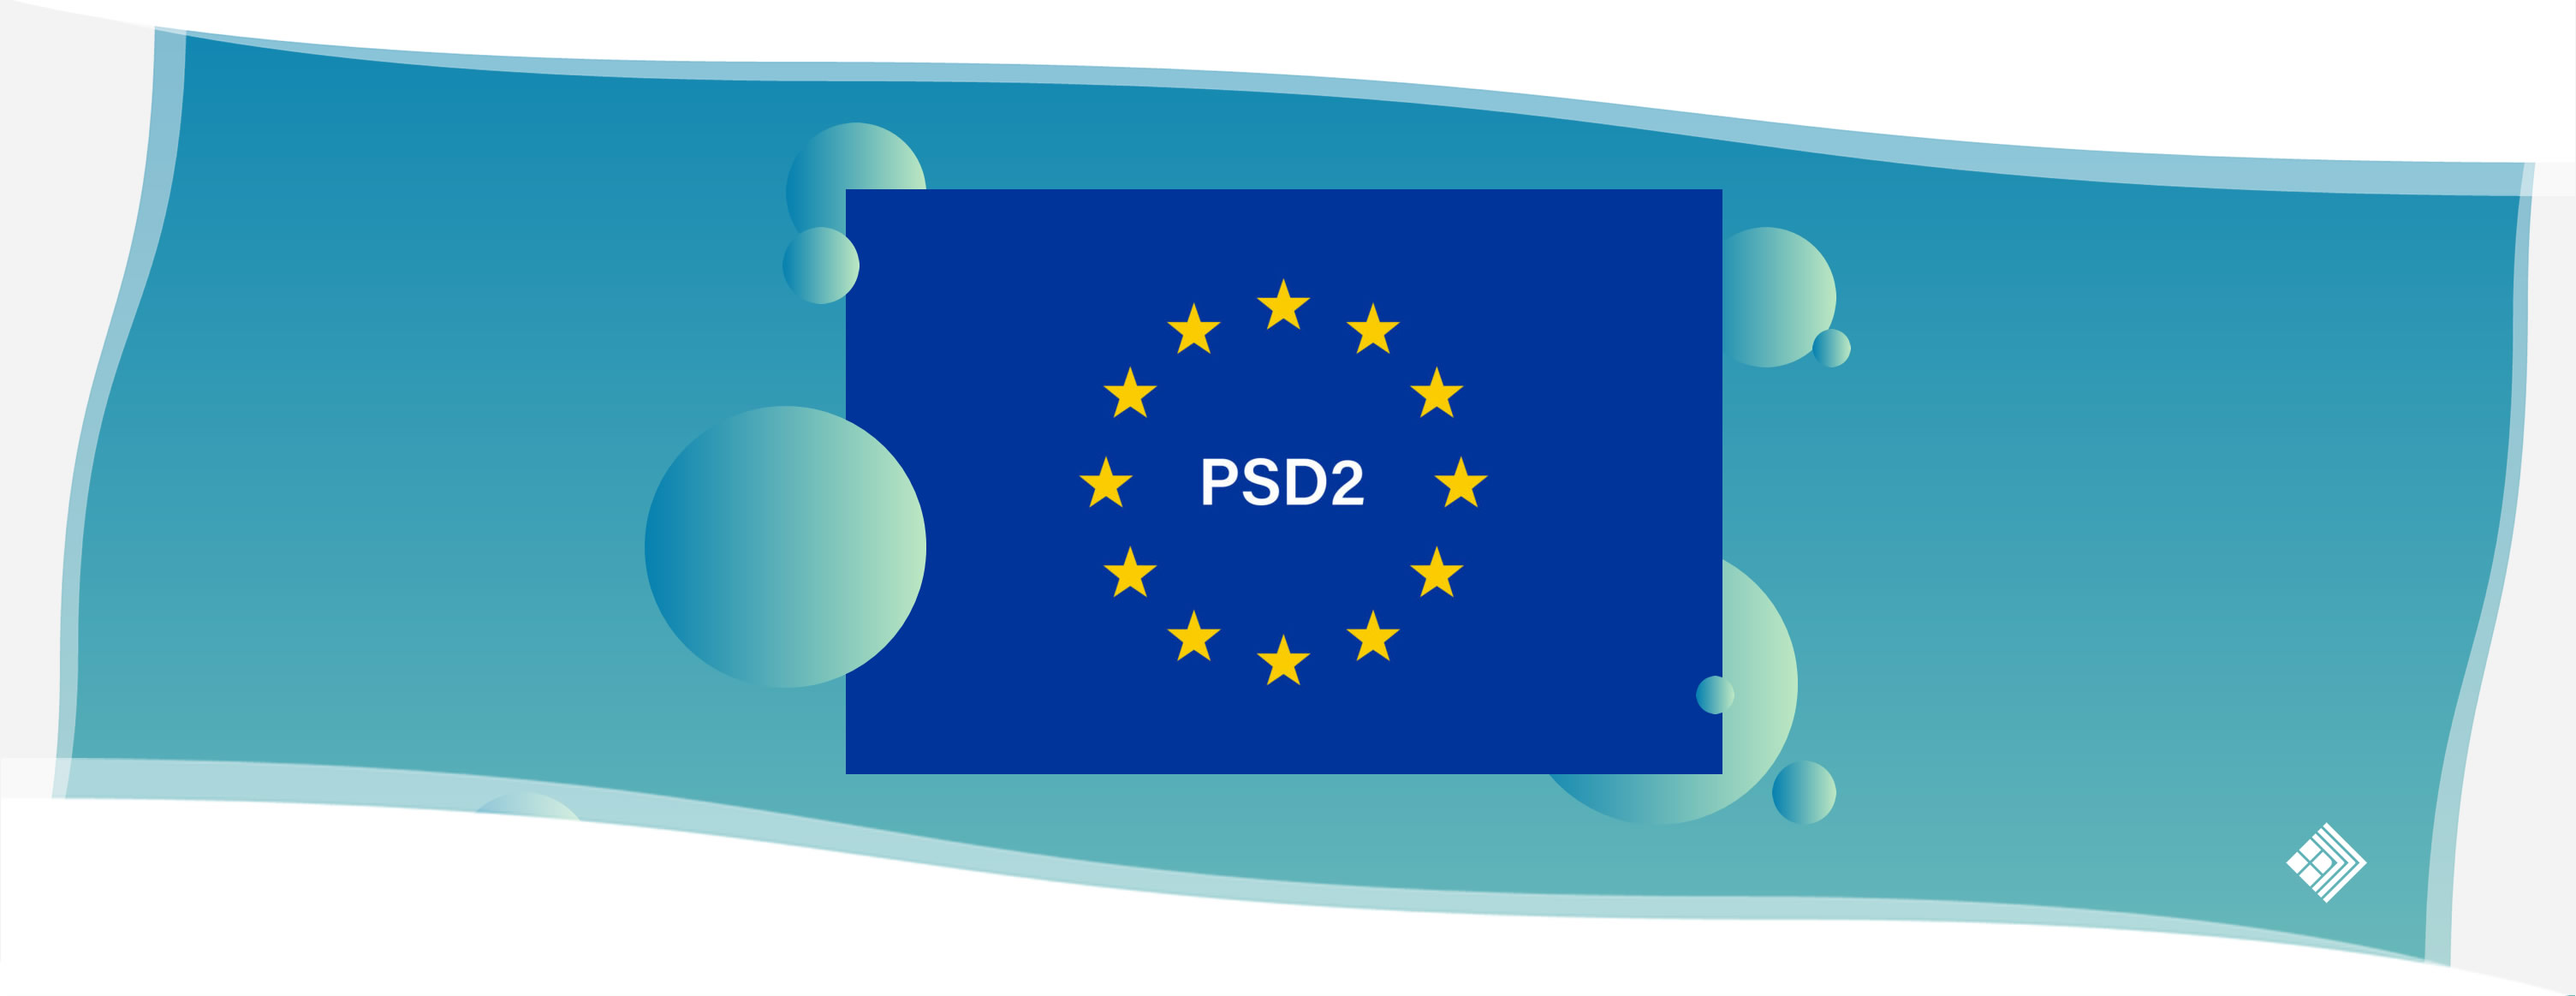 PSD2 - Payment Services Directive 2 CADIT